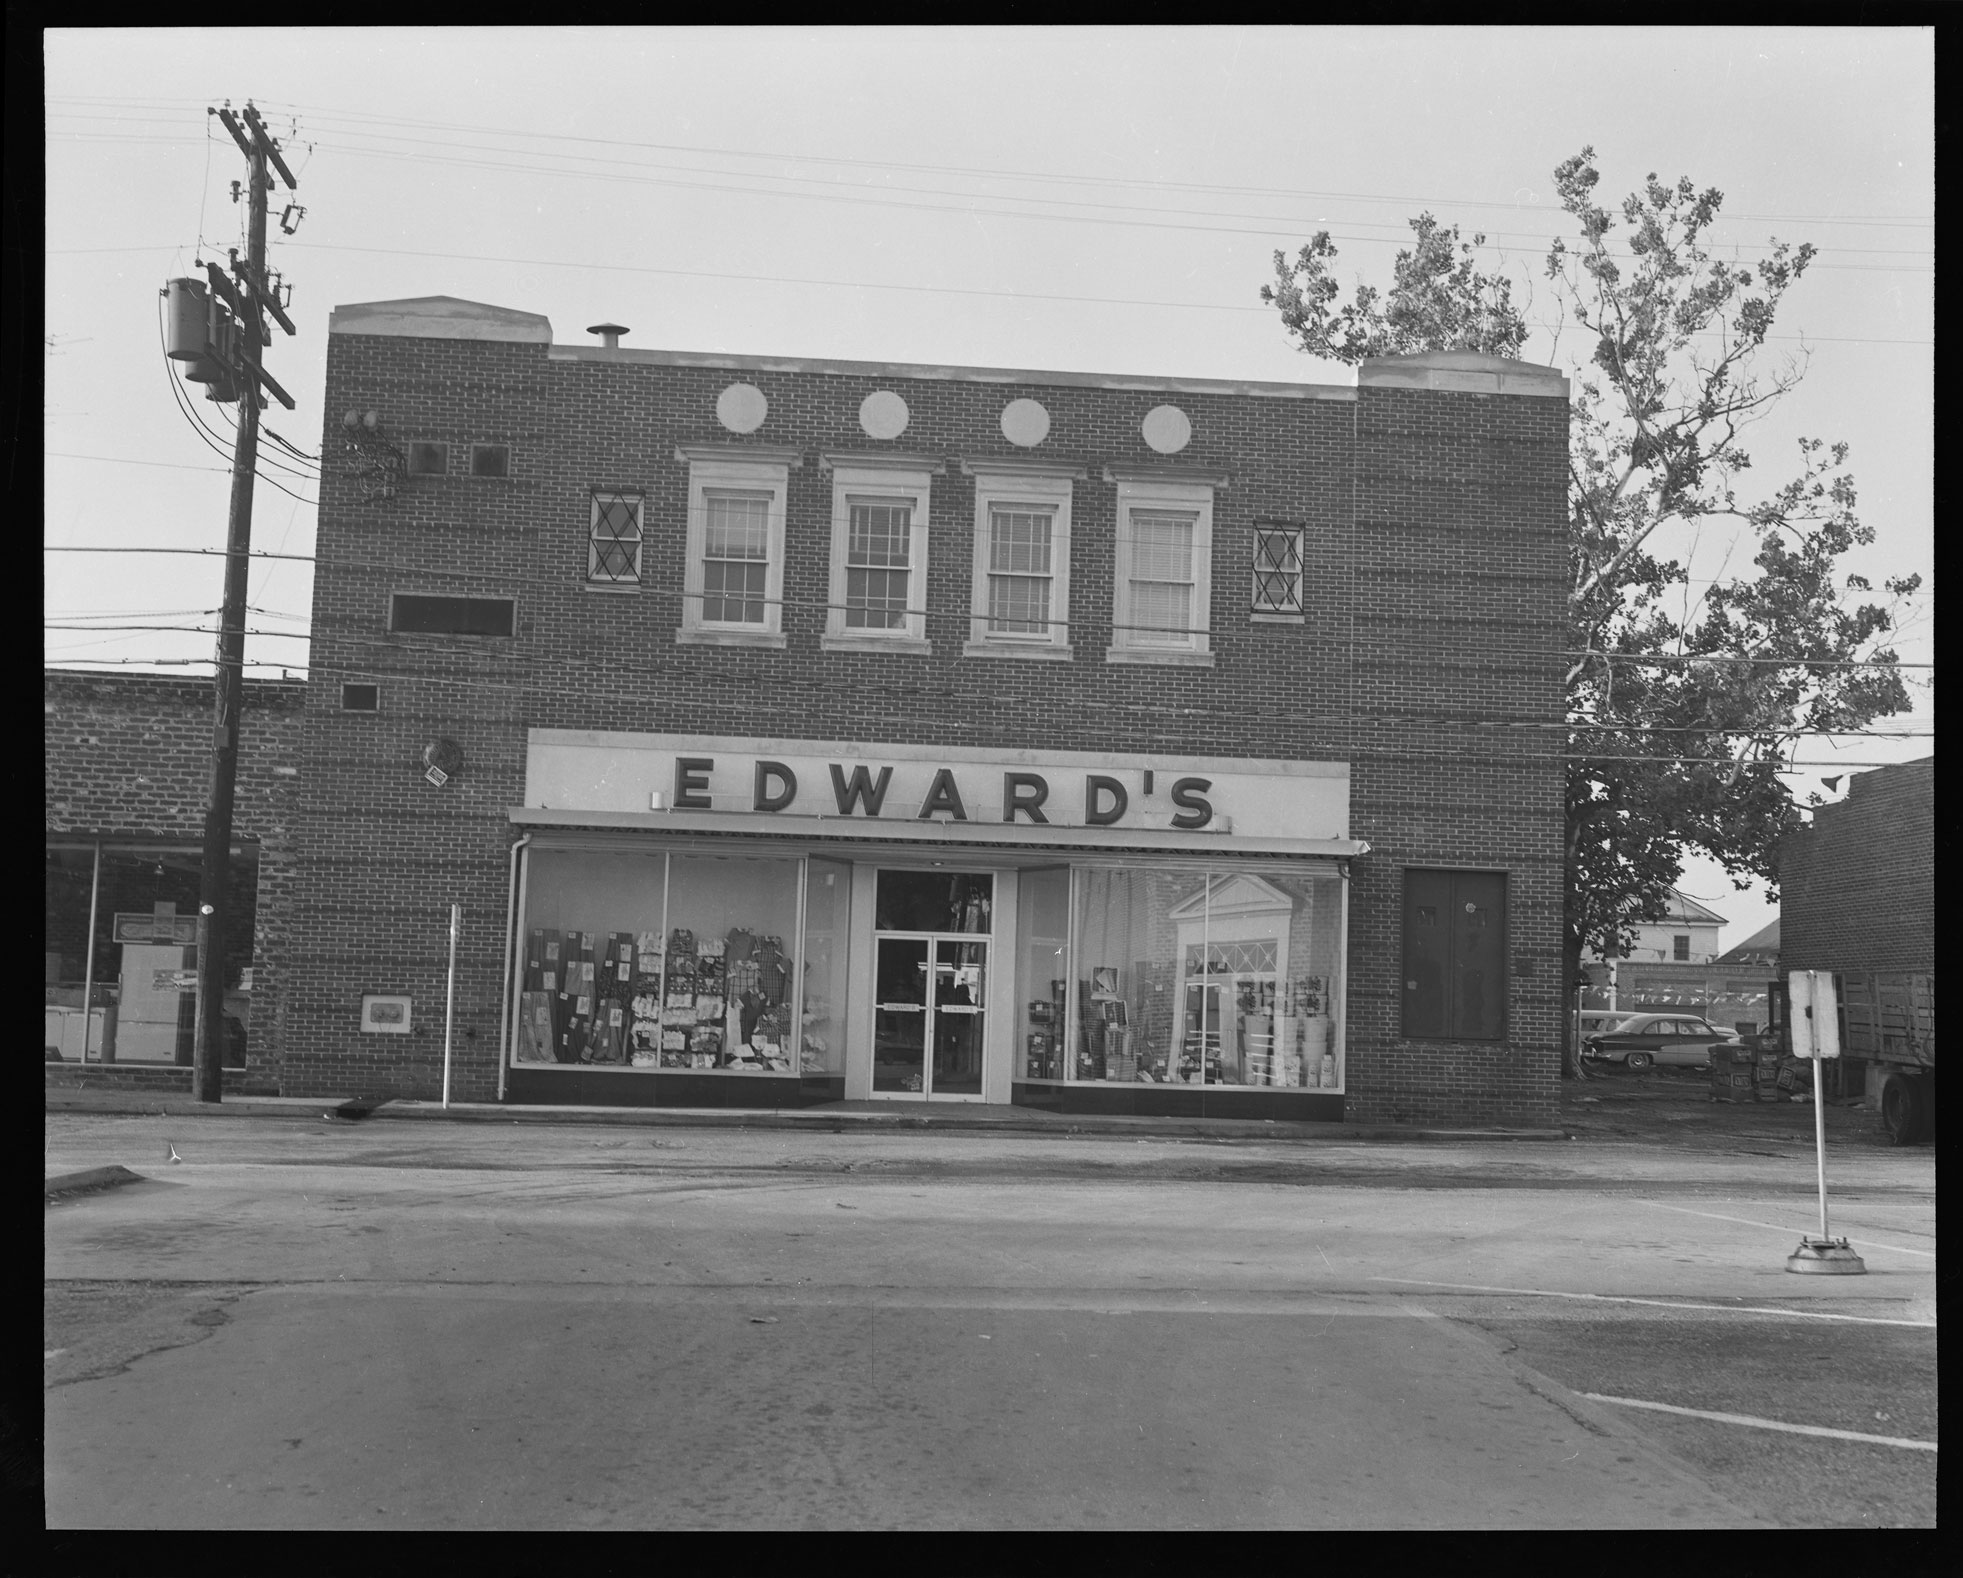 Edward's Port Republic street entrance